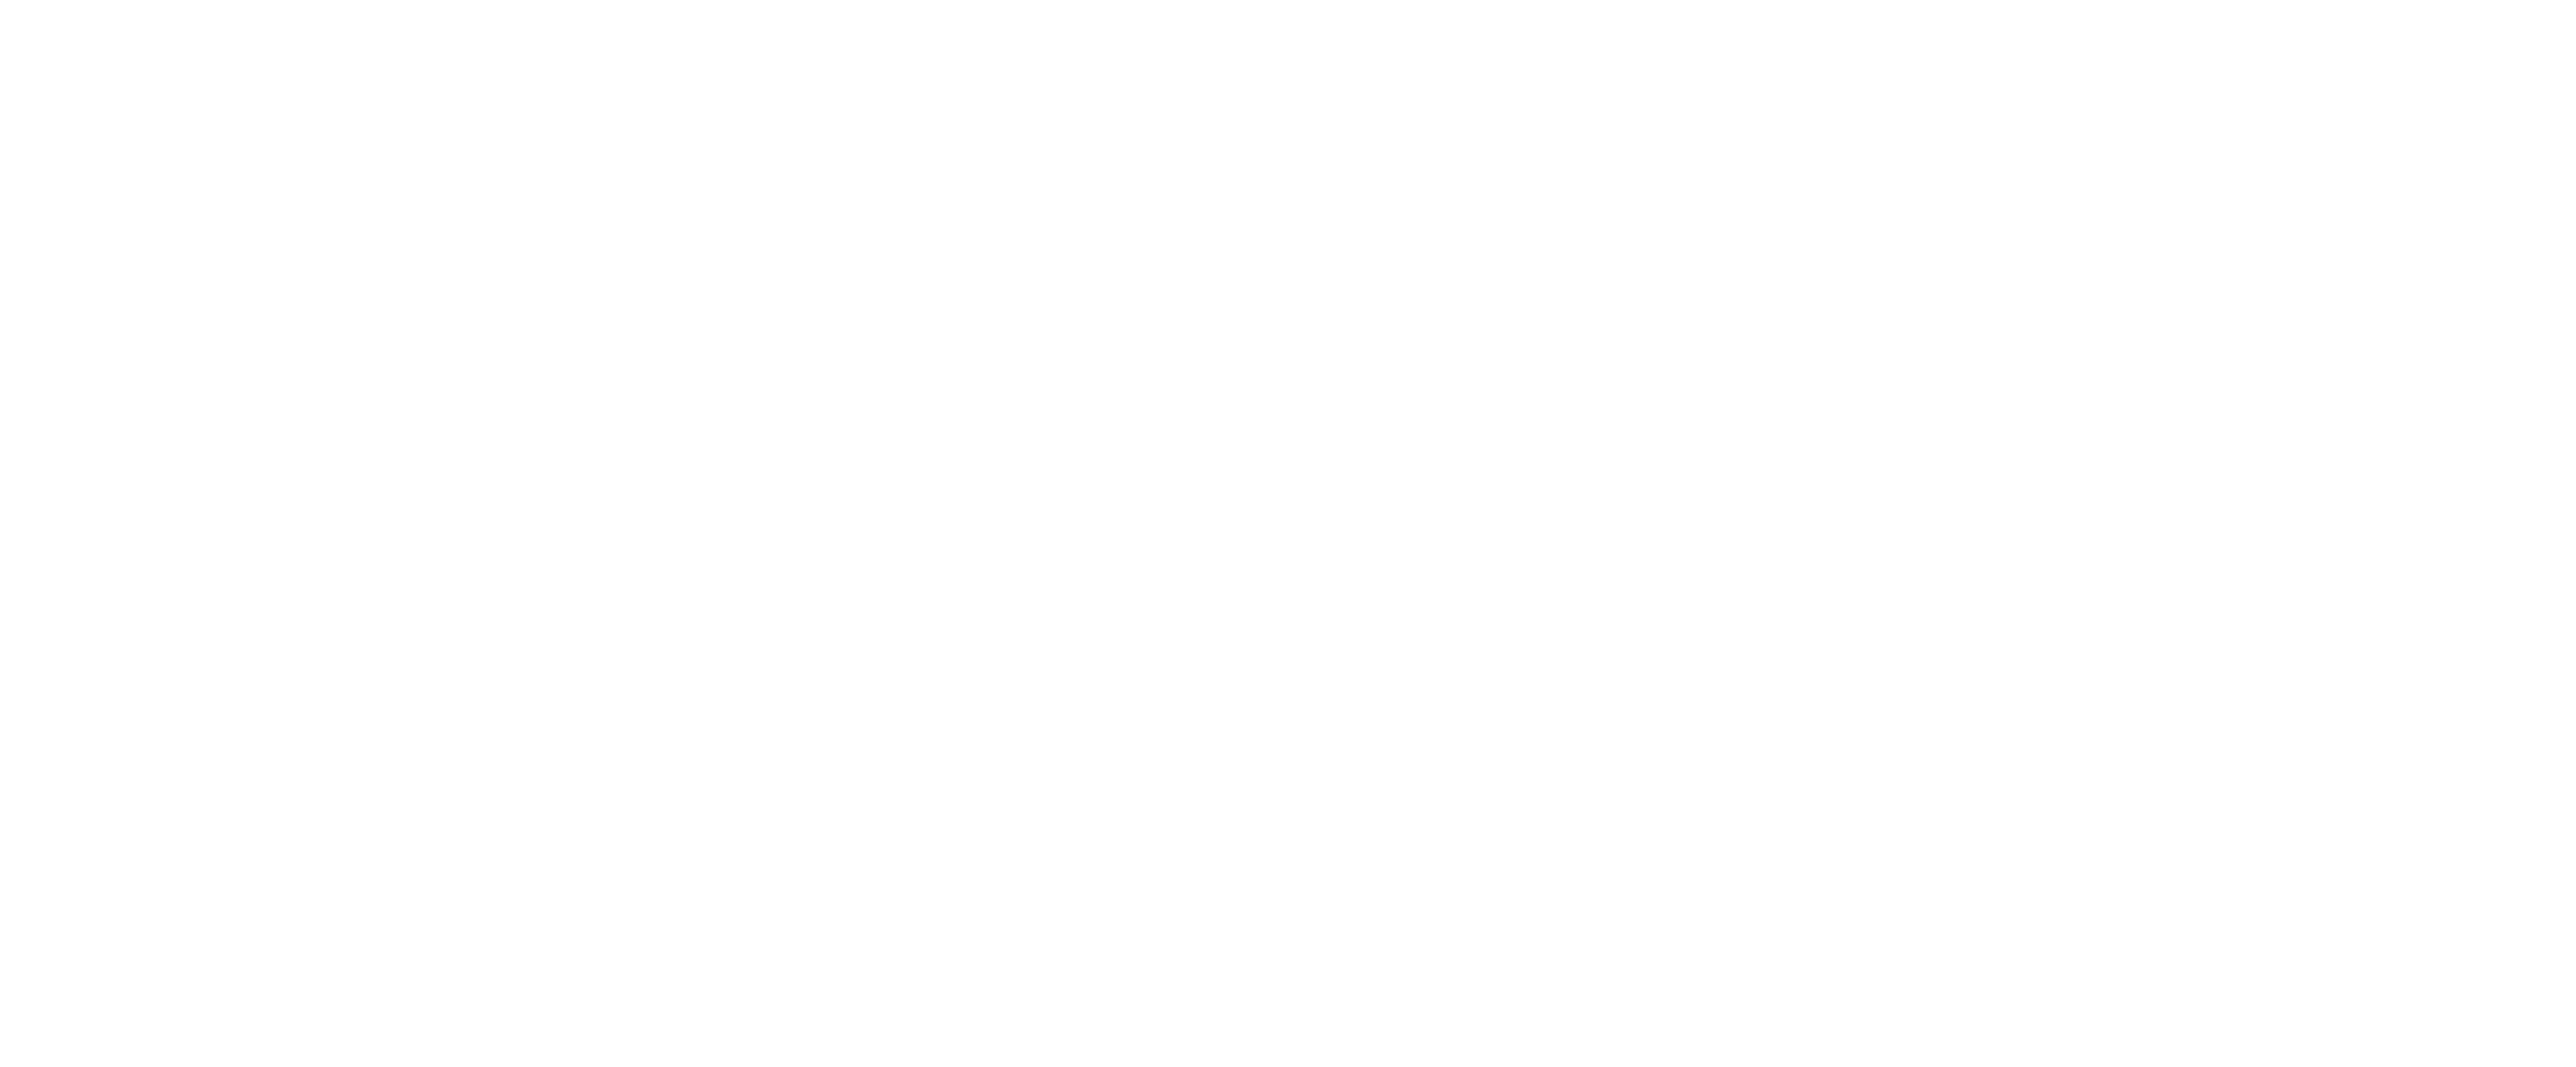 Altenburger Pergament & Trommelfell GmbH | Shop